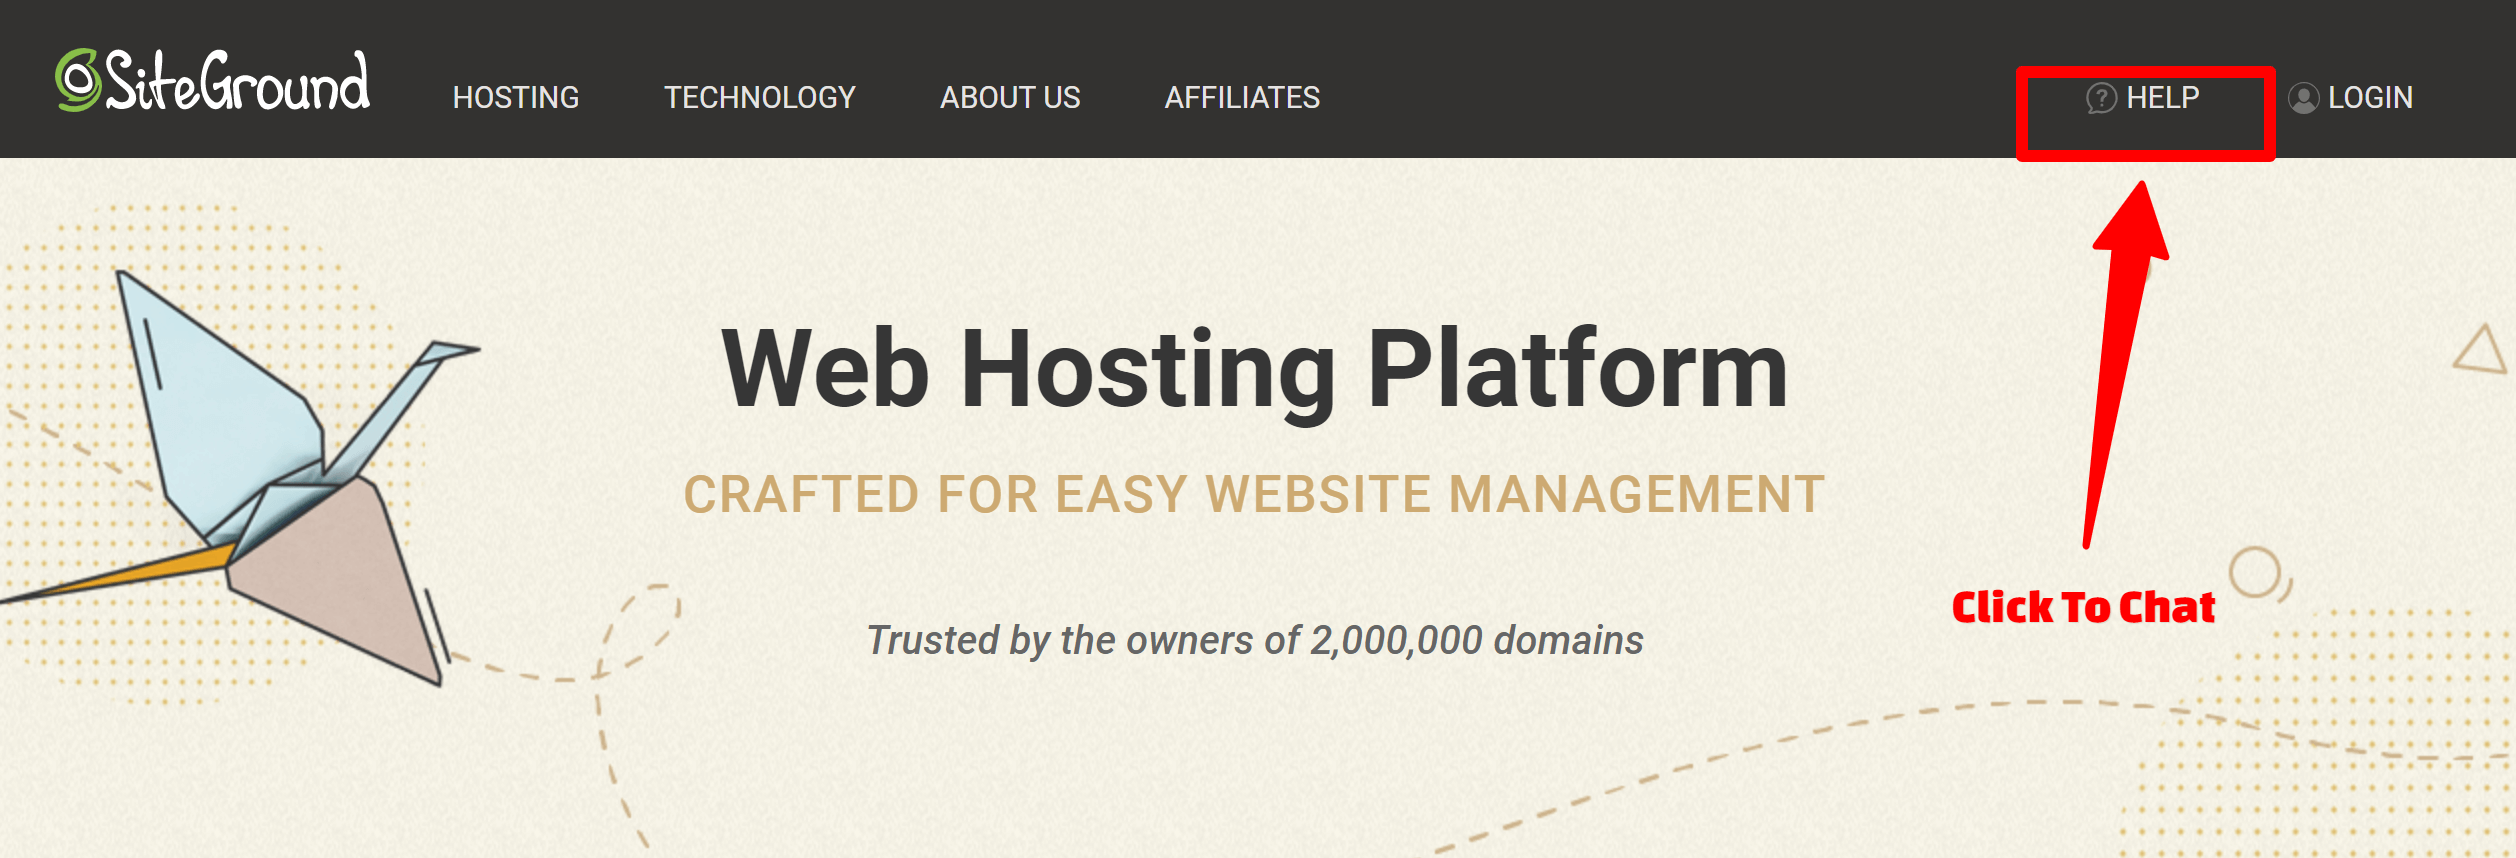 buy Siteground hosting with paypal